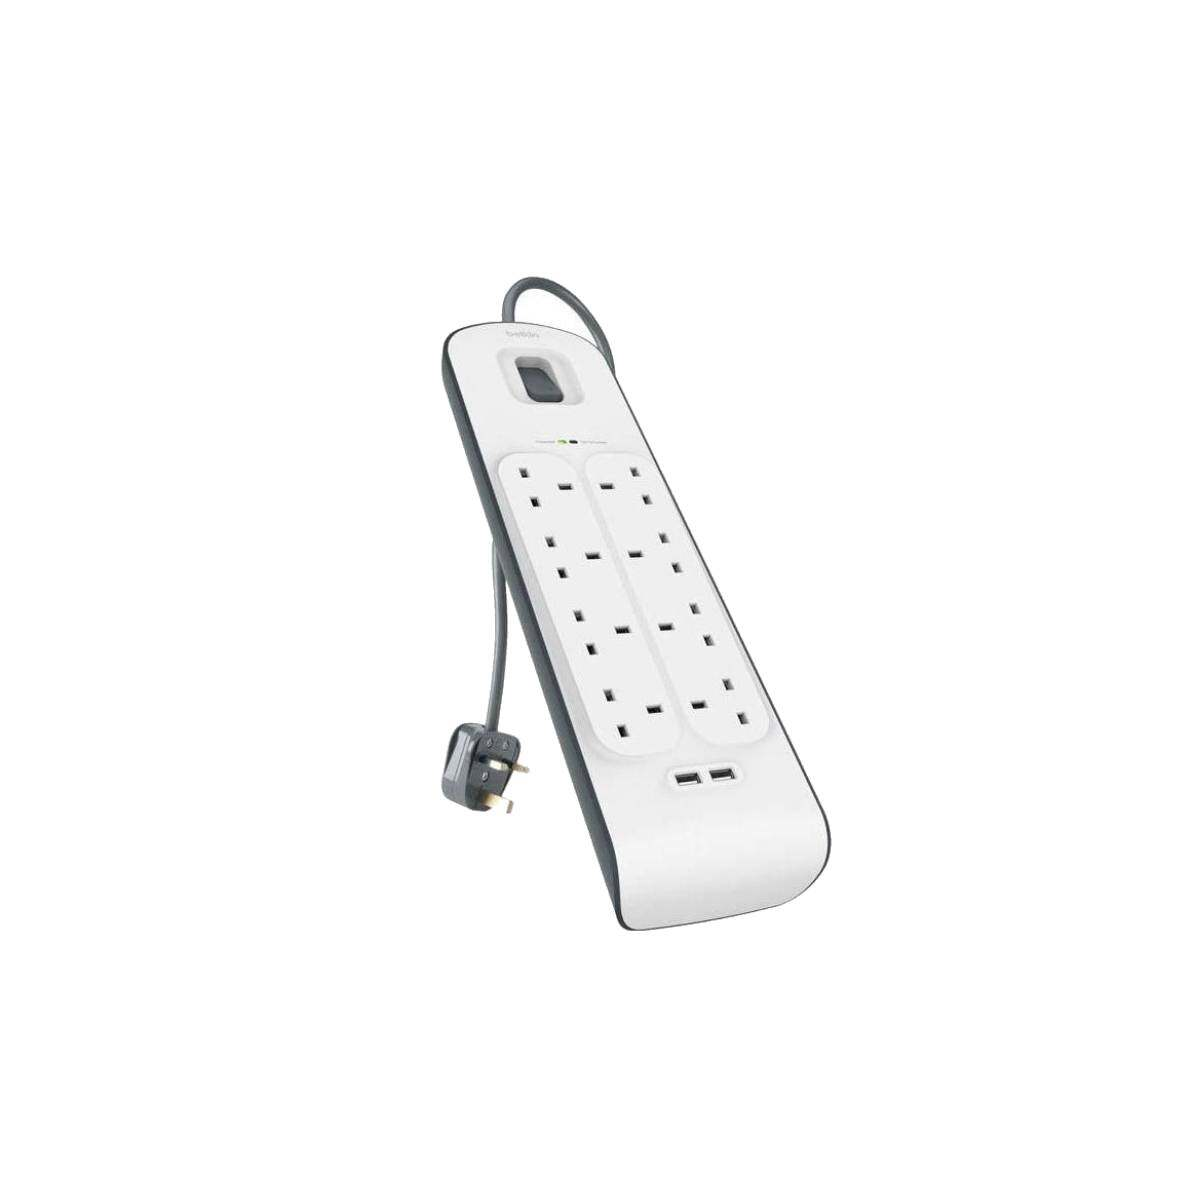 Belkin BSV804SA2M Extension Socket Surge Protector 8-Plugs With 2-USB 2M